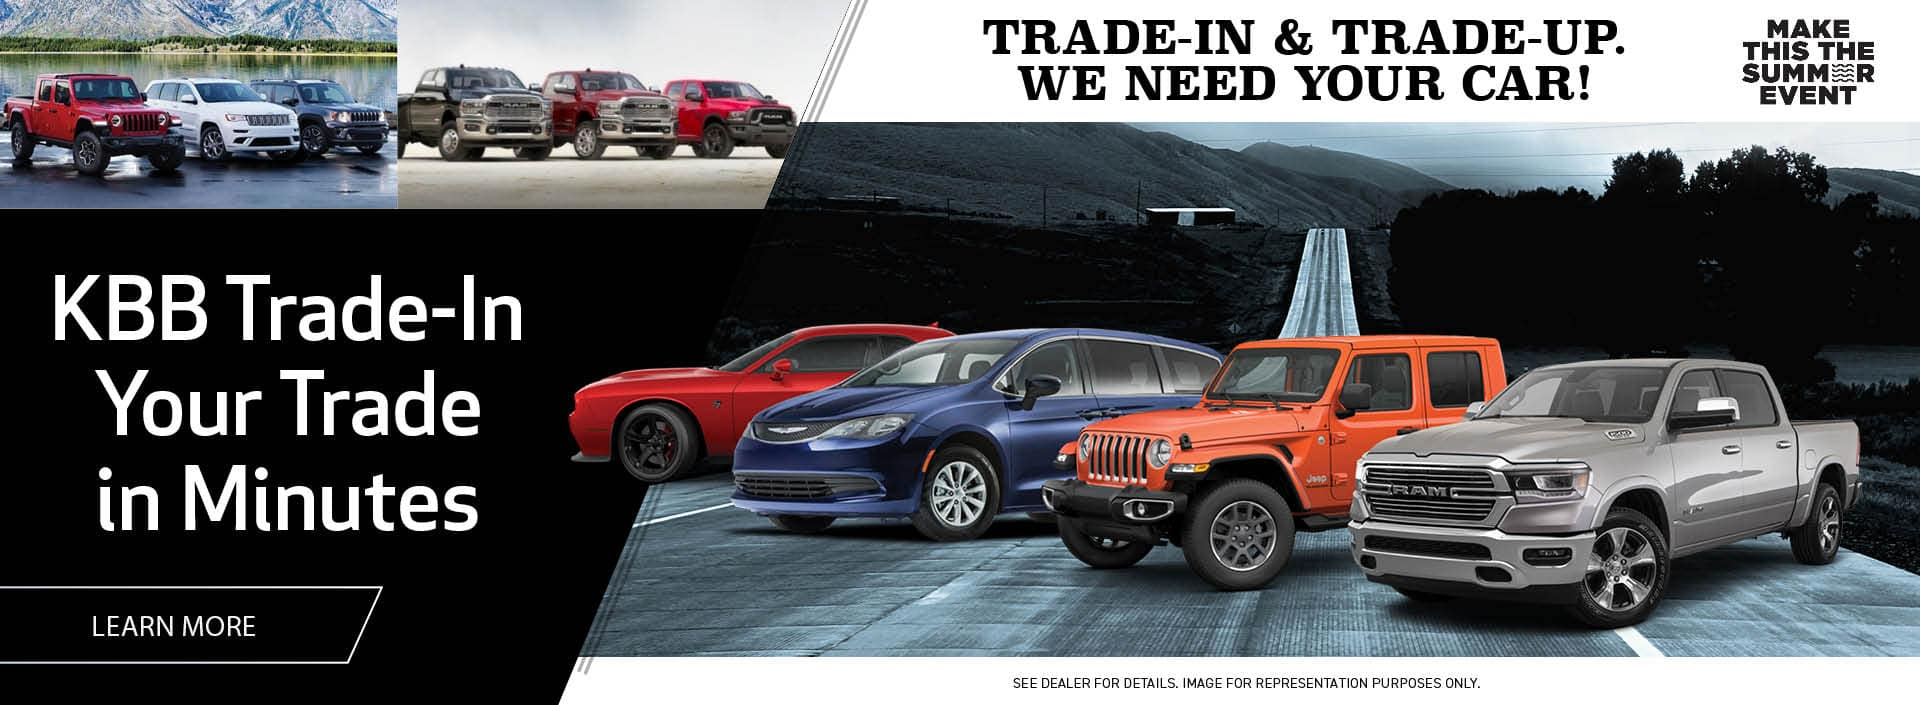 Trade-In & Trade-Up. We Need Your Car!